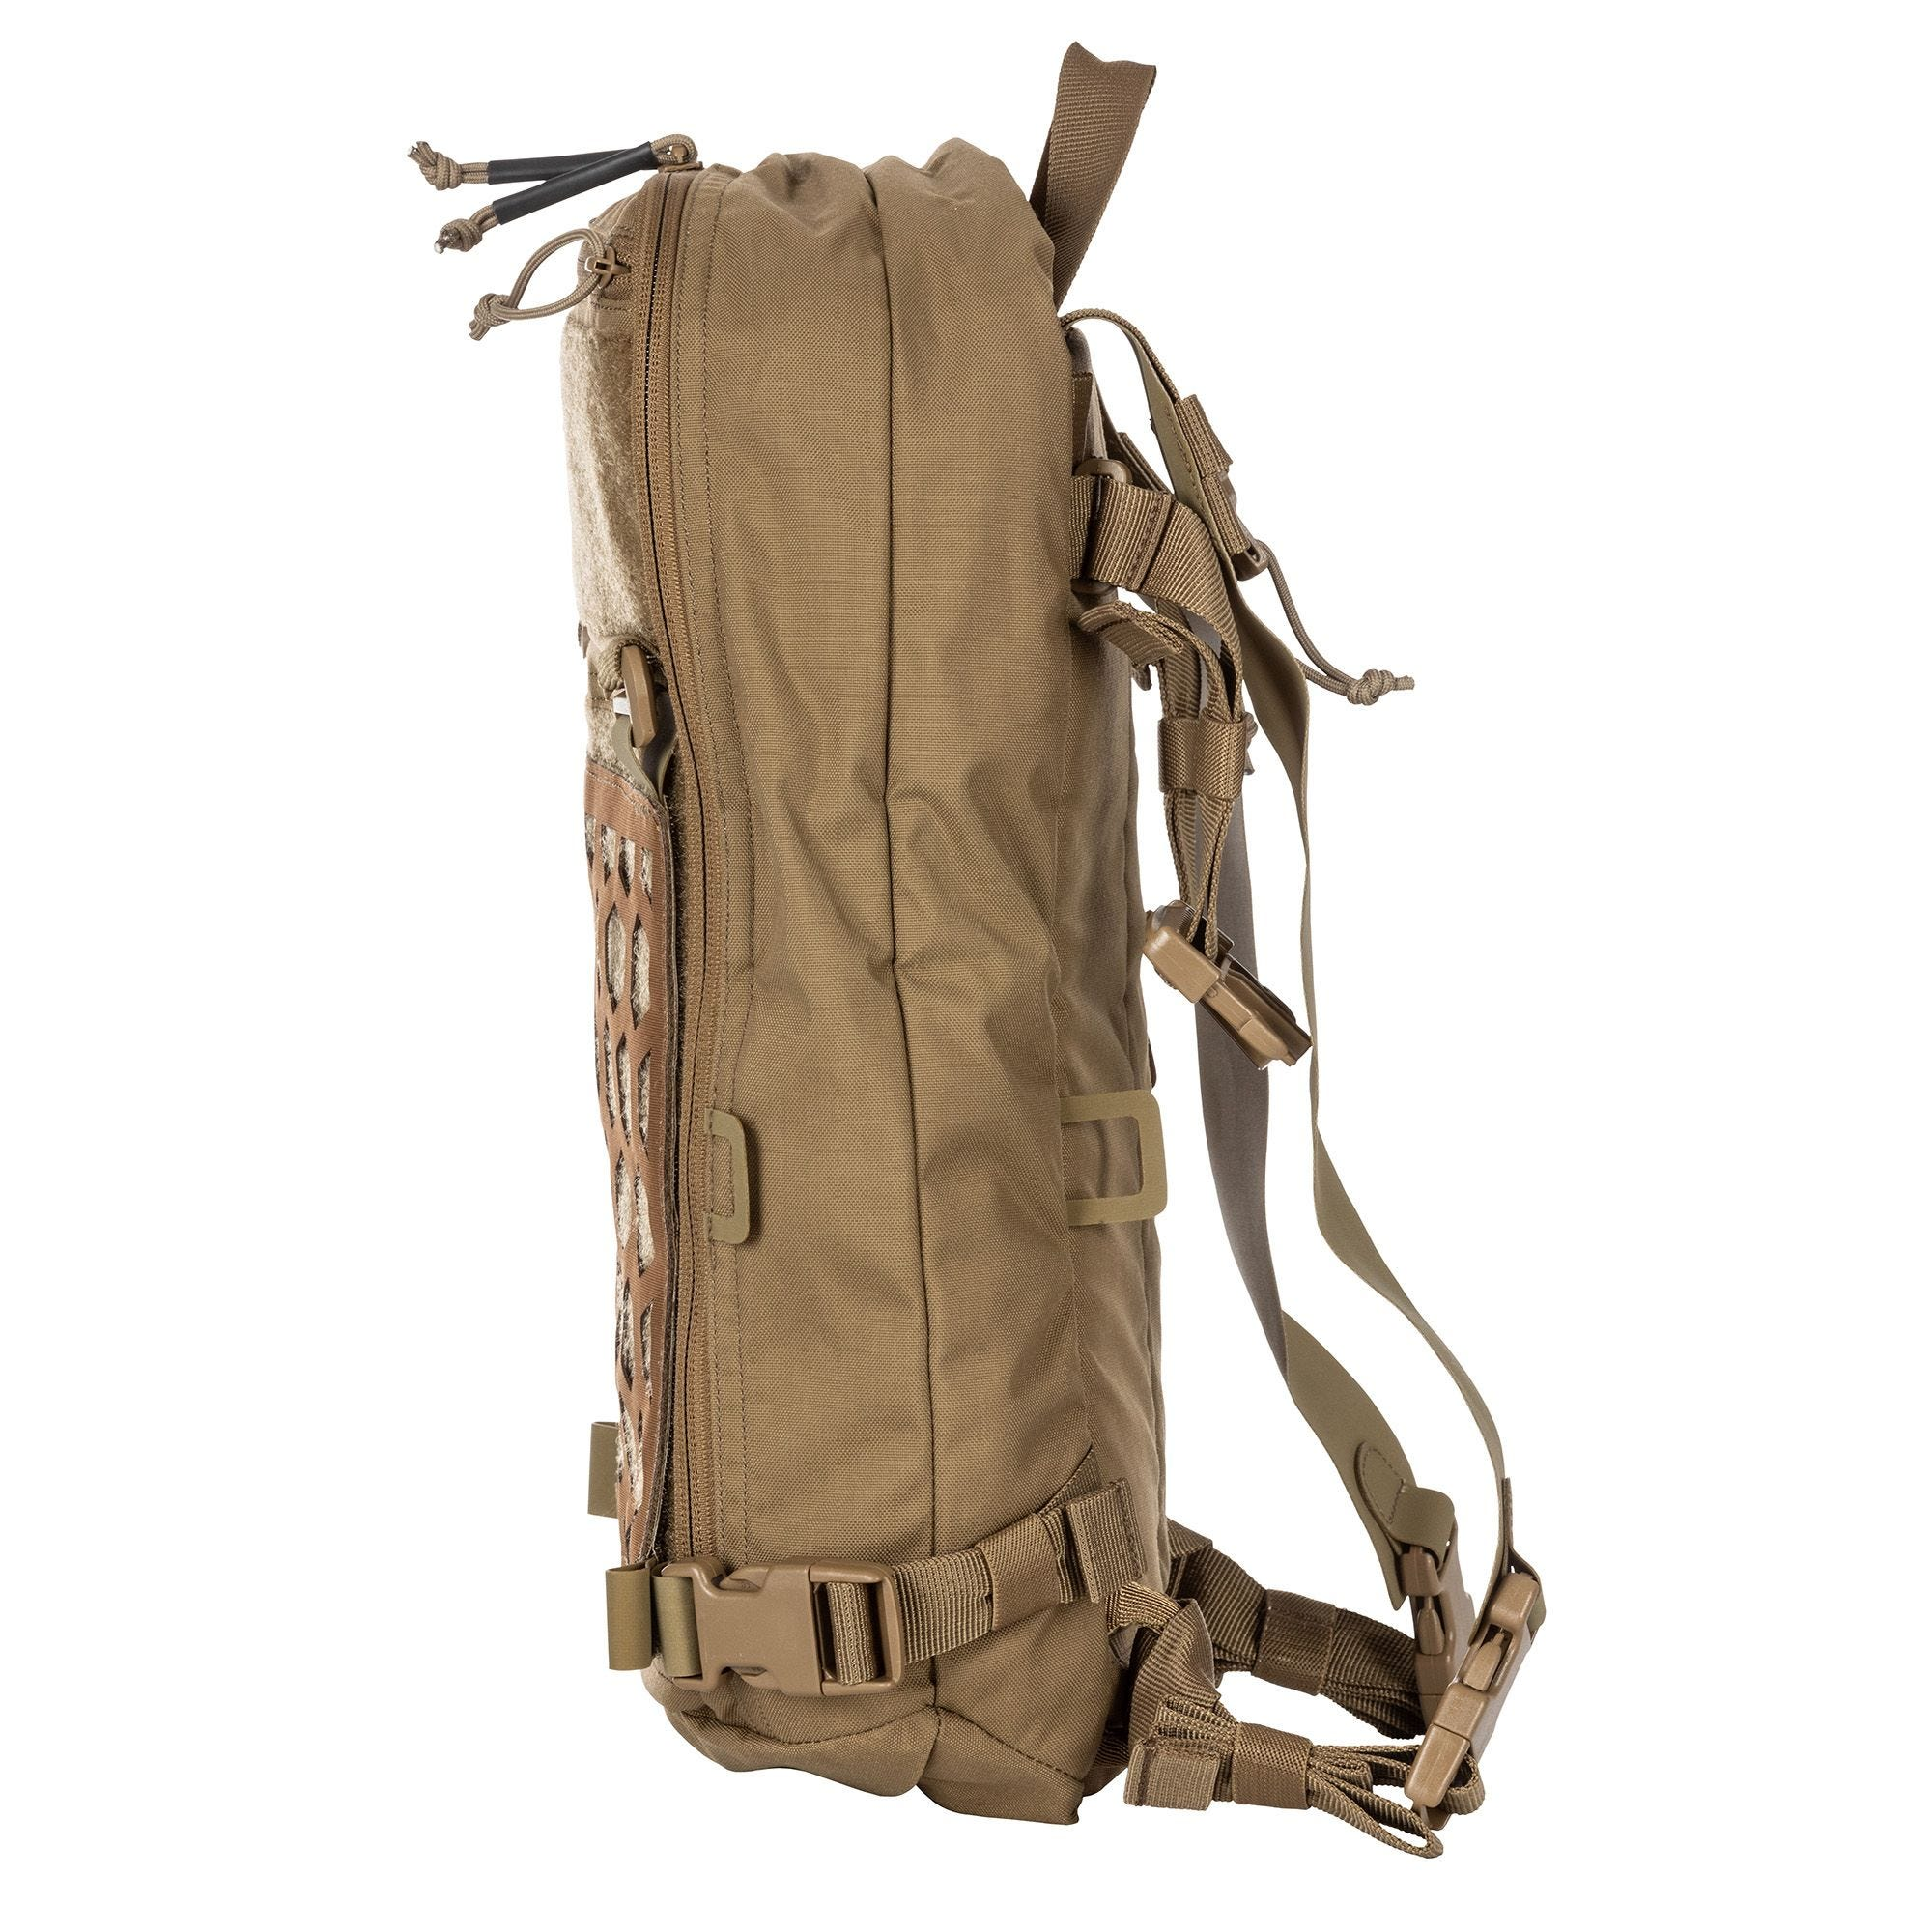 Balo 5.11tactical AMPC PACK 16L – Kangaroo